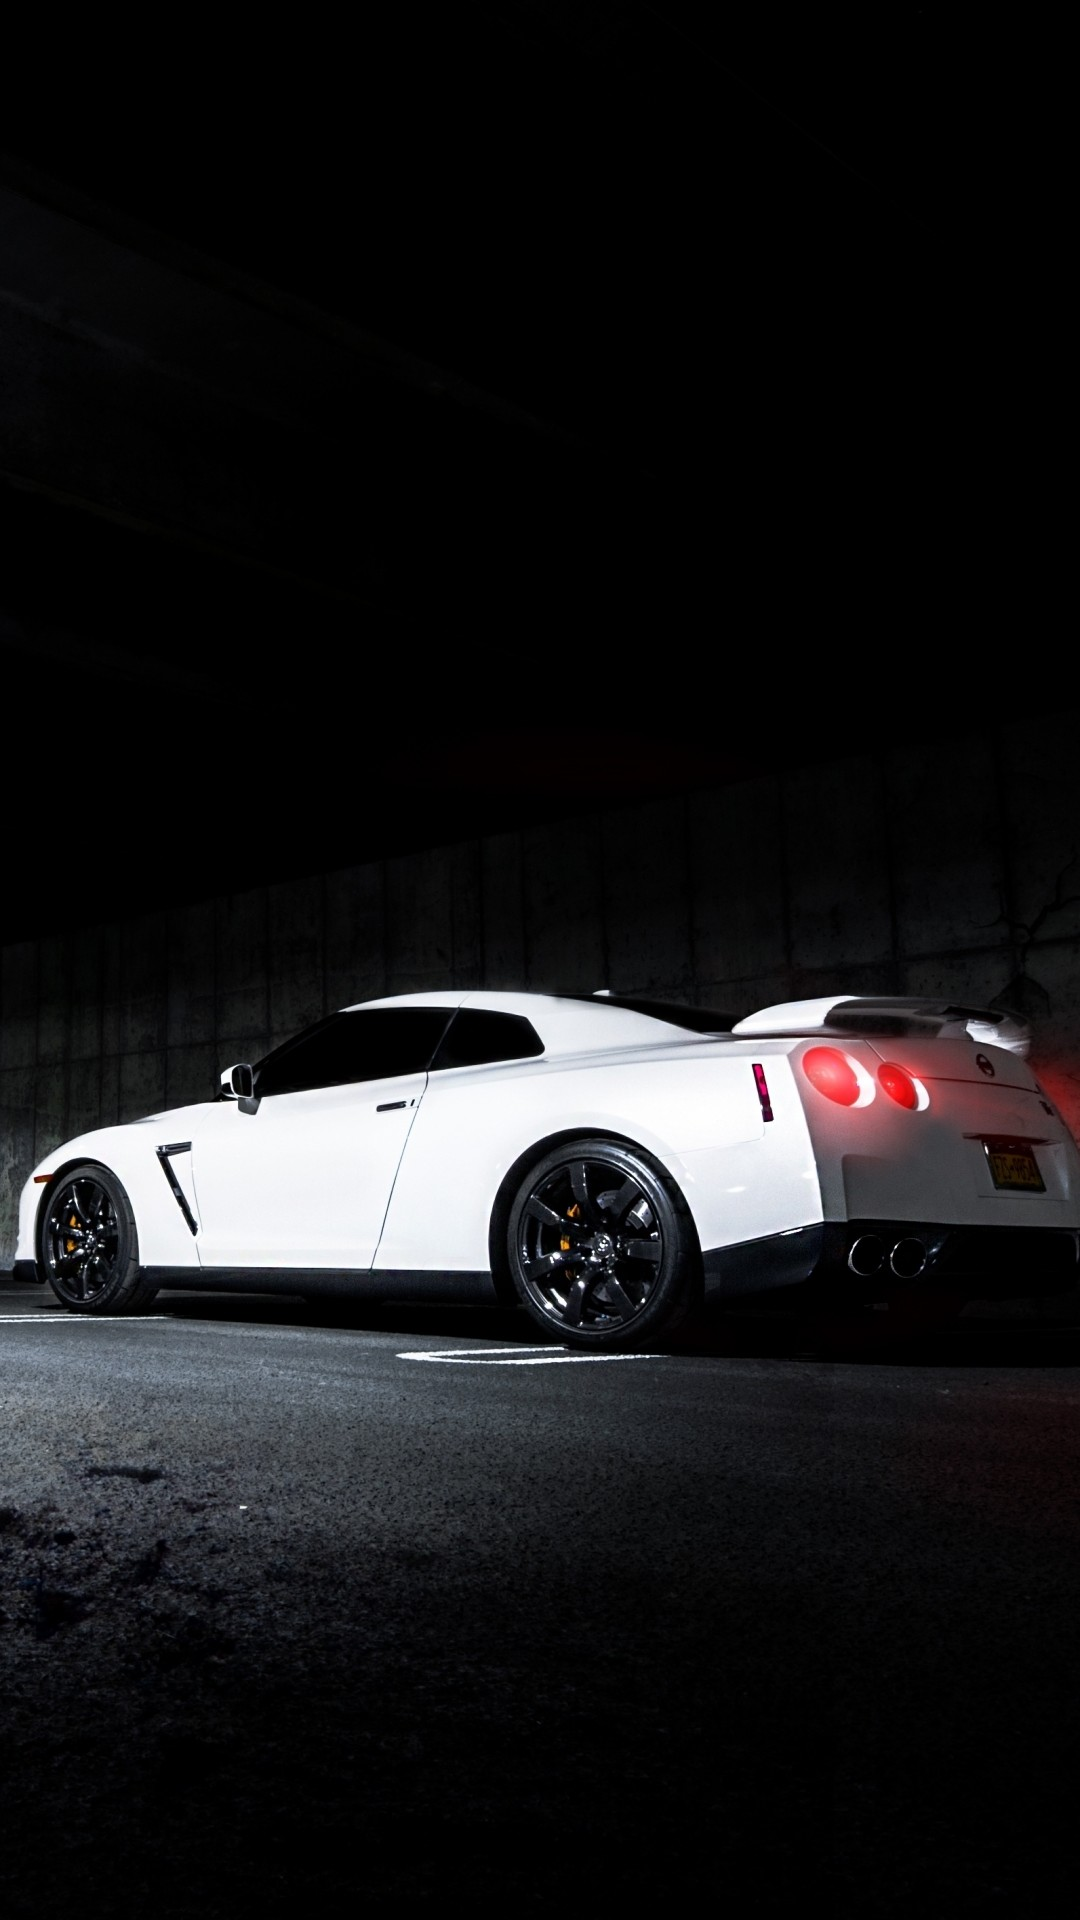 Nissan Gt R Wallpaper 74 images 1080x1920